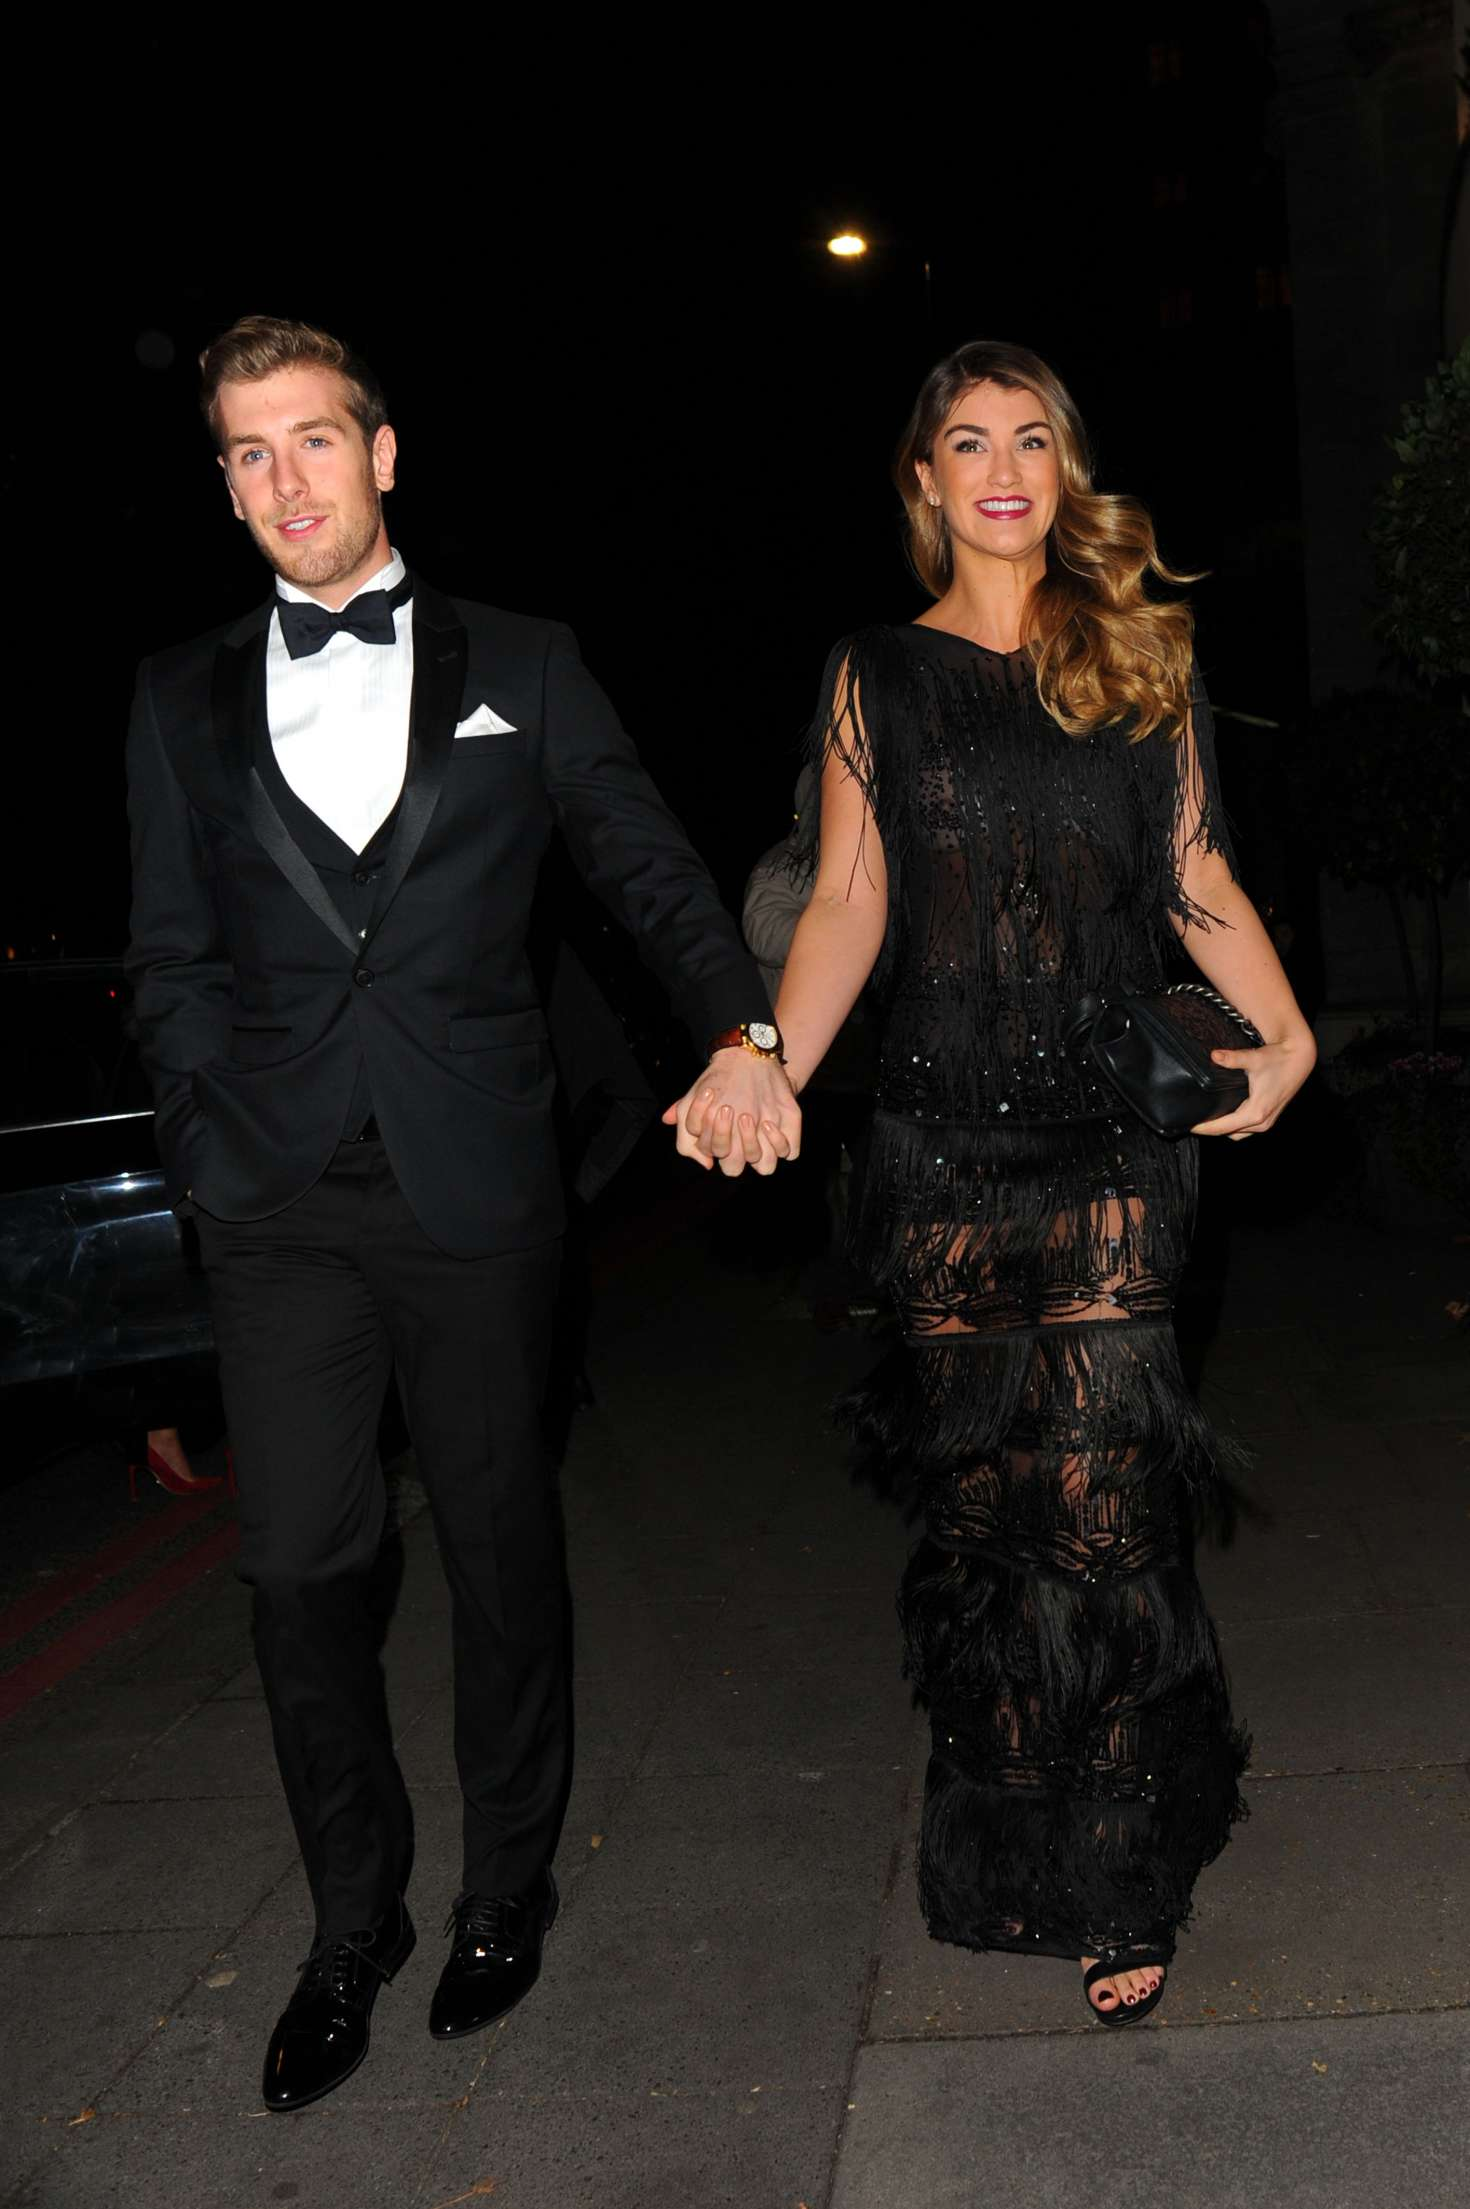 Amy Willerton 2016 : Amy Willerton: Chain Of Hope Annual Gala Ball 2016 -20